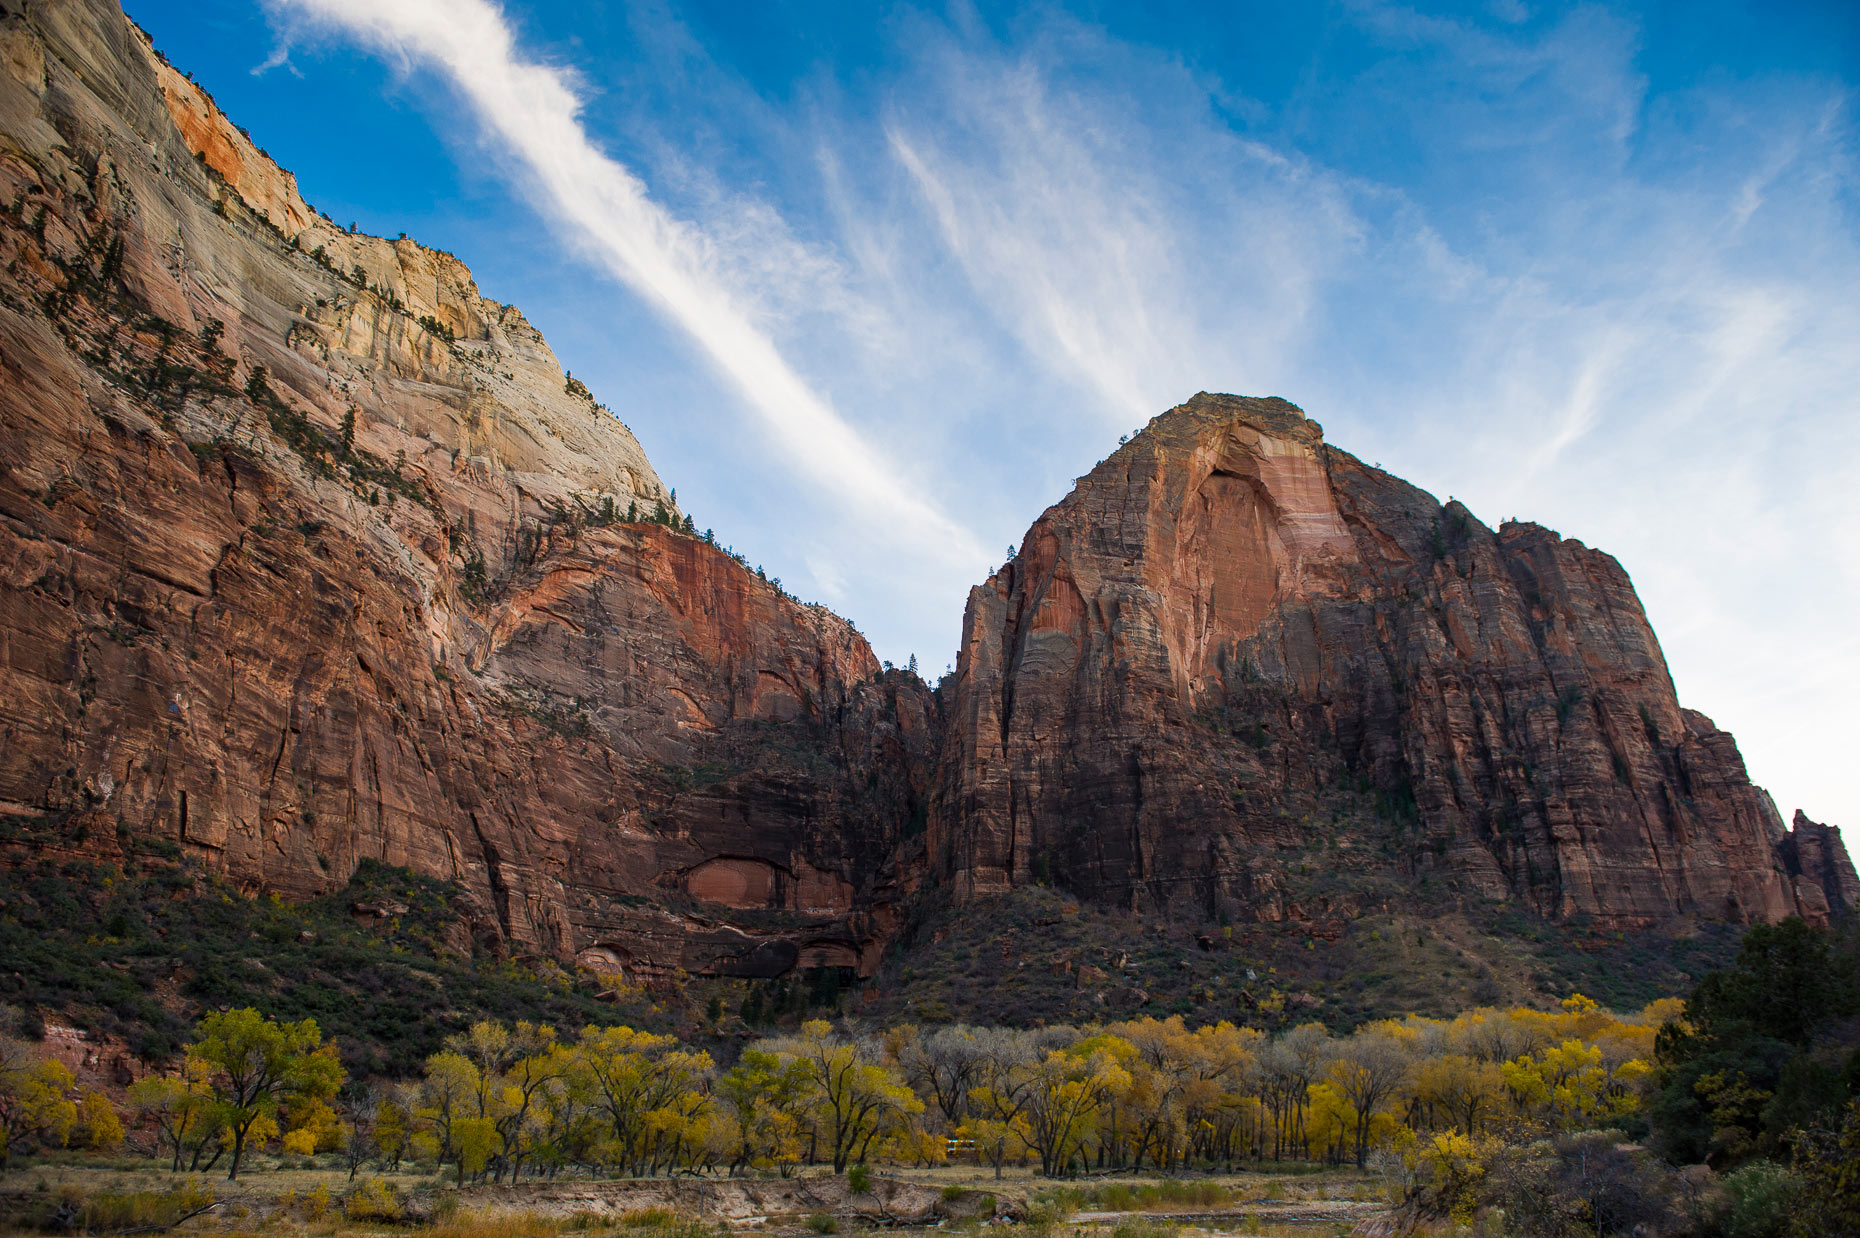 Landscape Photography - Zions National Park Cliffs Utah